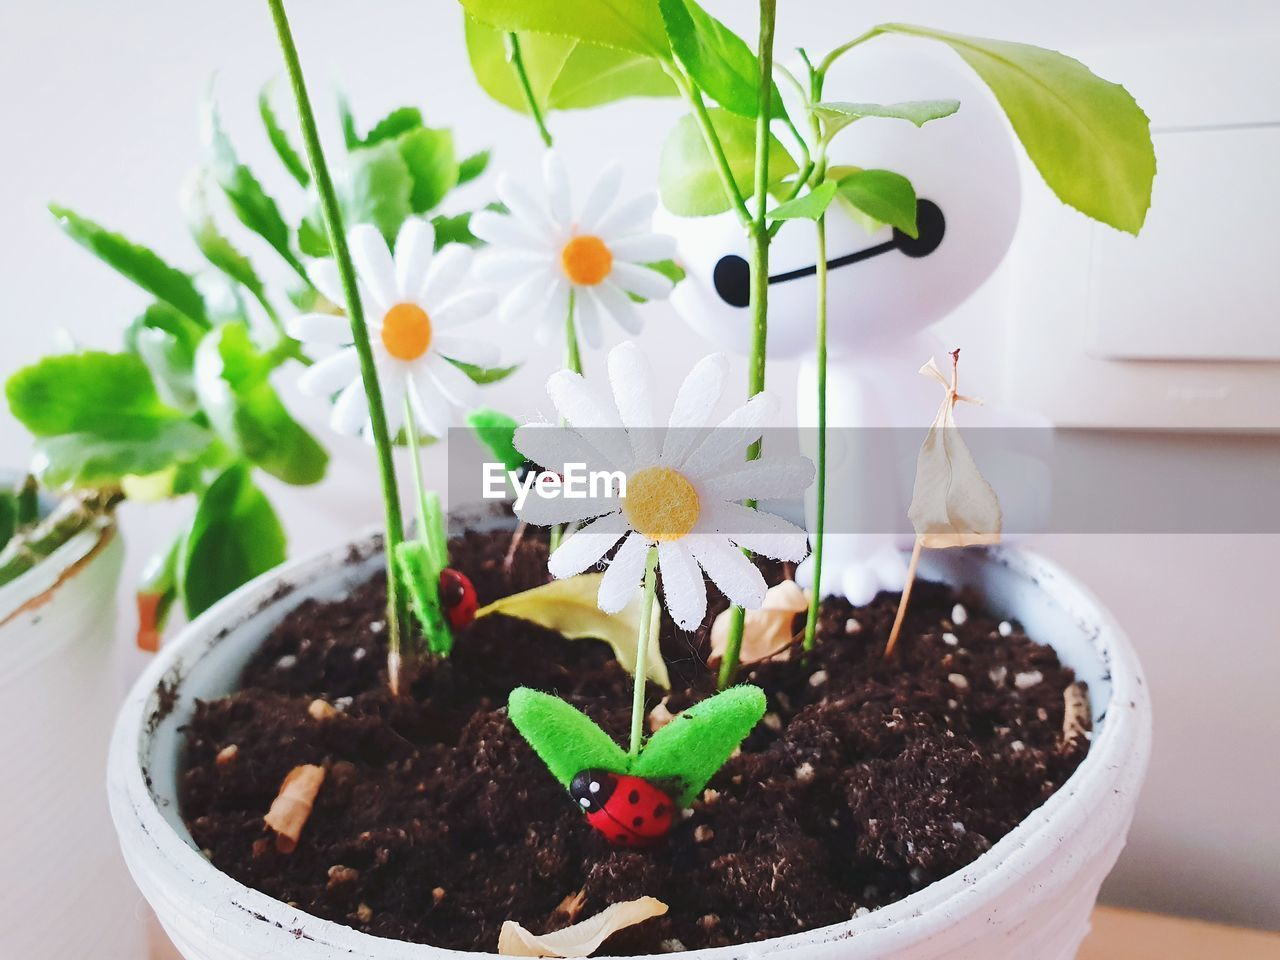 plant, flower, freshness, growth, flowering plant, potted plant, nature, vulnerability, fragility, leaf, close-up, beauty in nature, plant part, focus on foreground, no people, green color, day, botany, flower head, seedling, flower pot, temptation